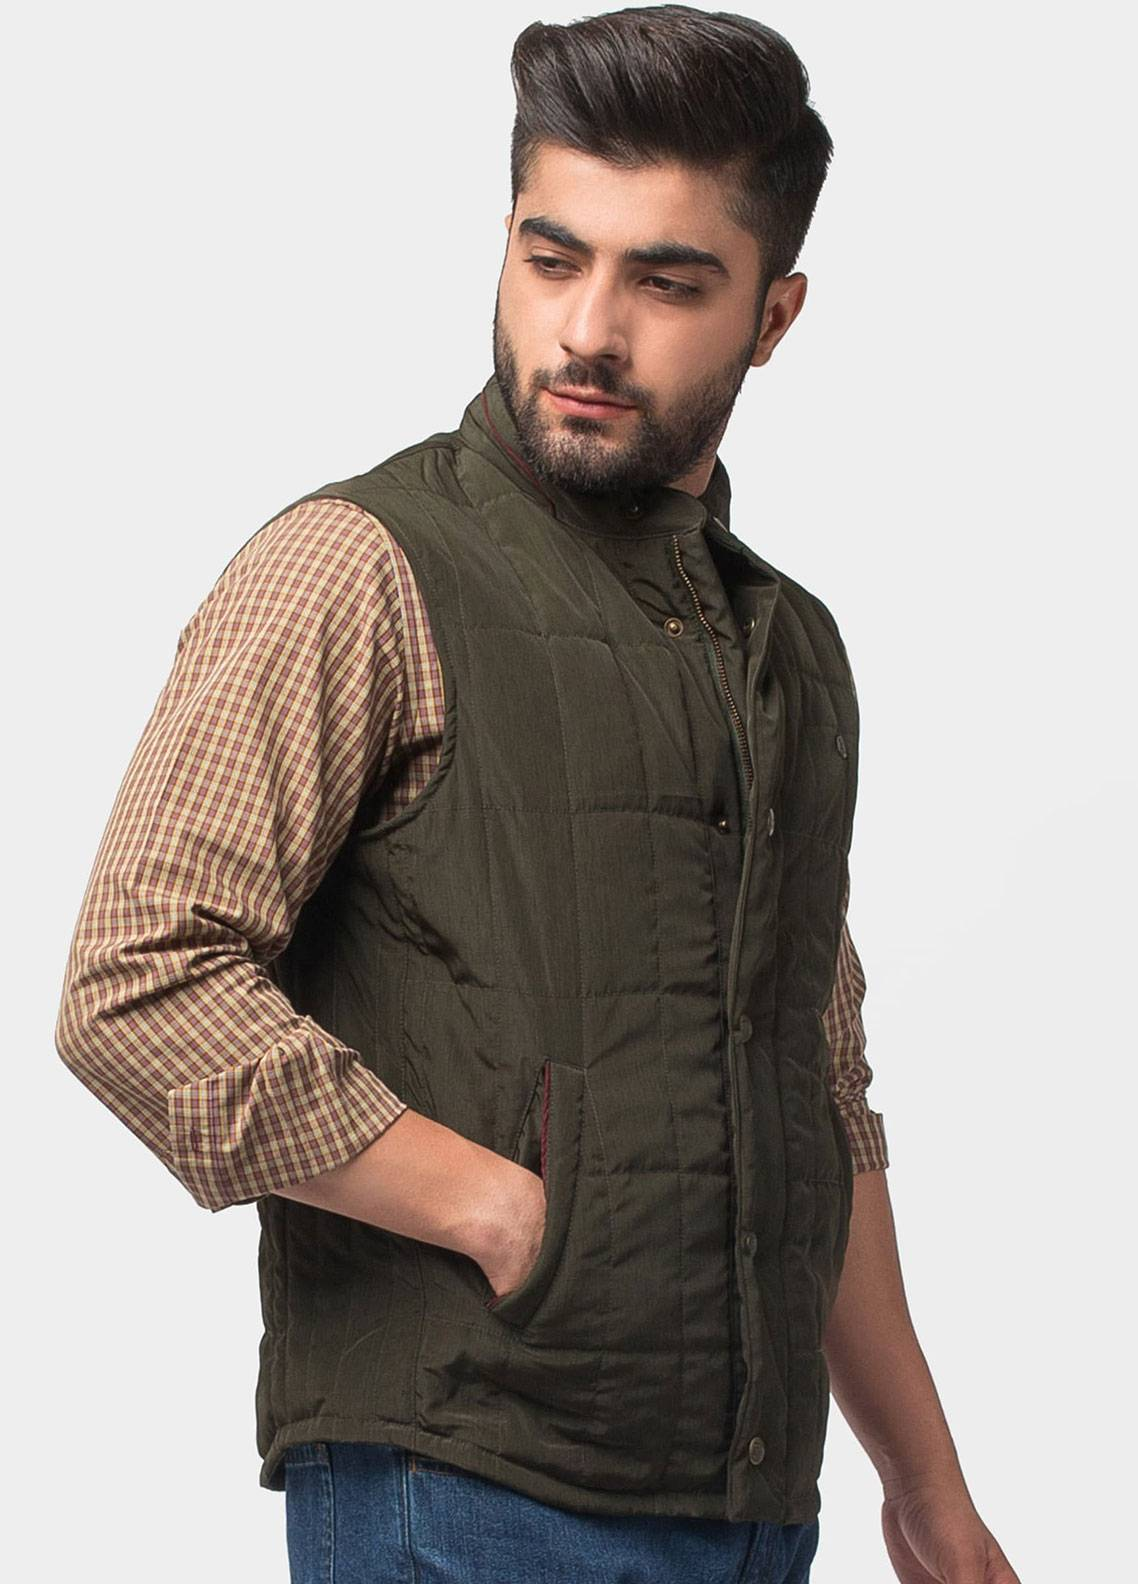 Brumano Polyester Sleeveless Jackets for Men - Olive BRM-12-1007